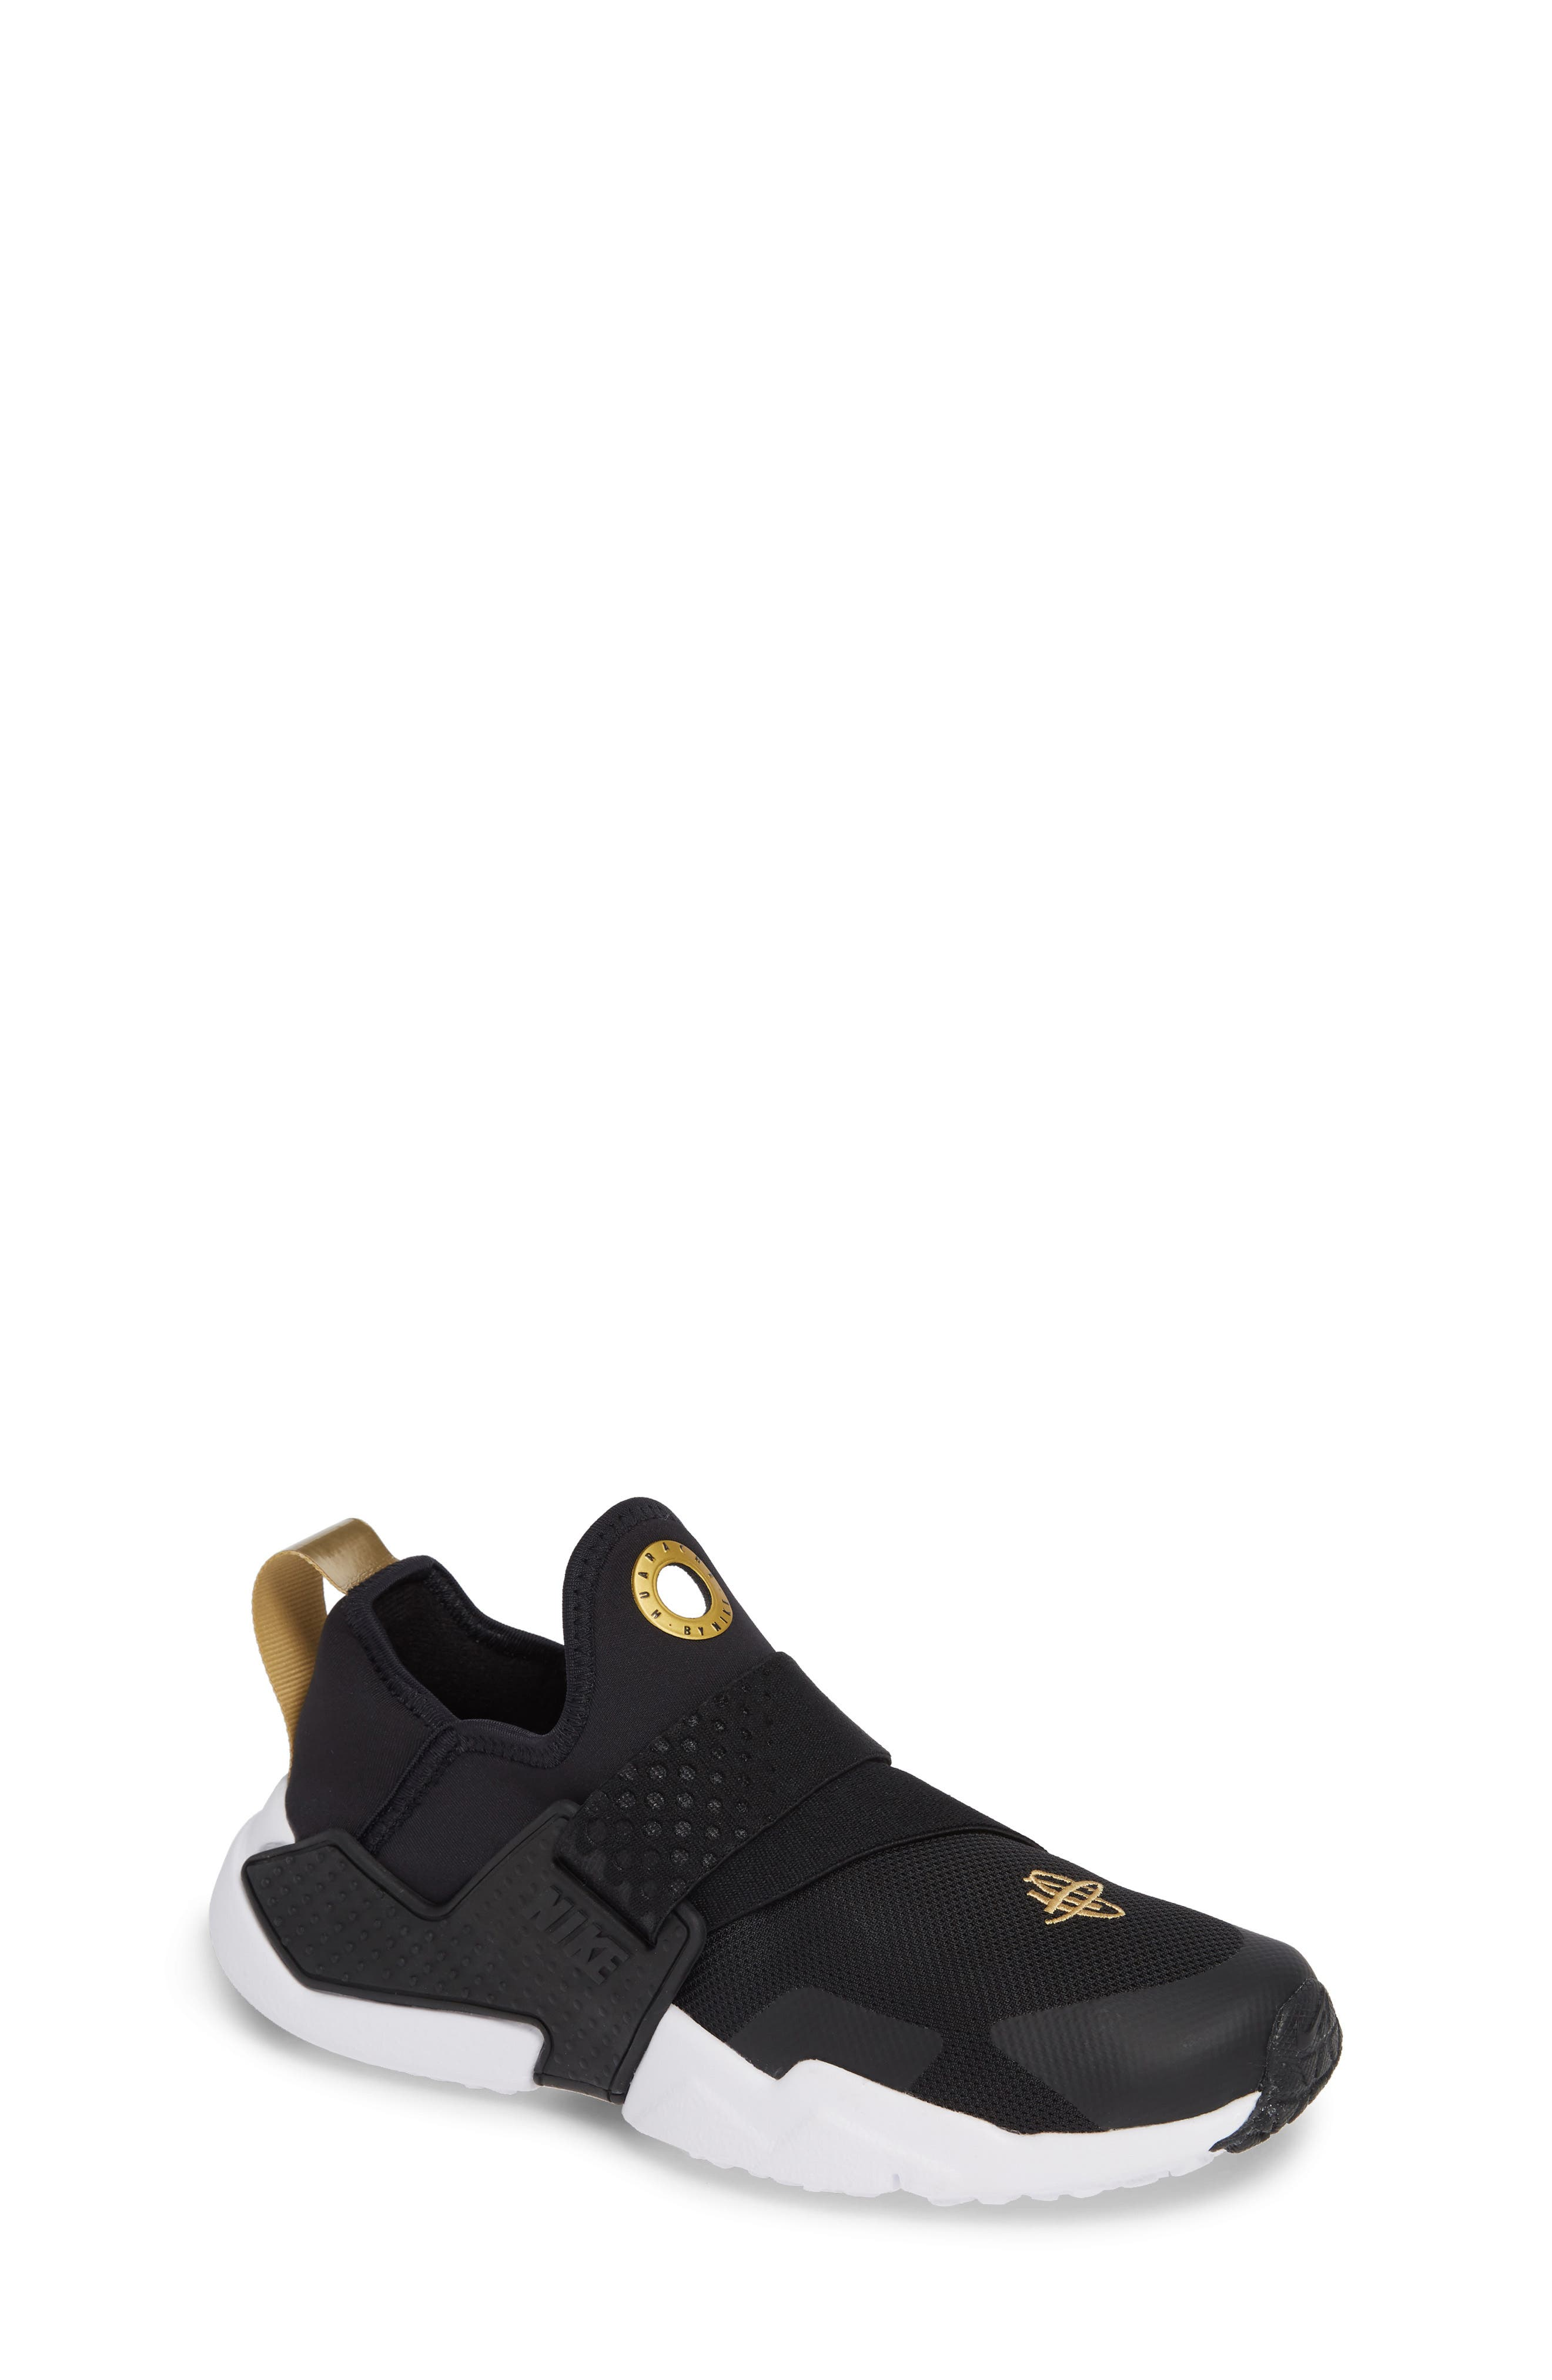 Huarache Extreme Sneaker,                         Main,                         color, BLACK/ METALLIC GOLD/ WHITE